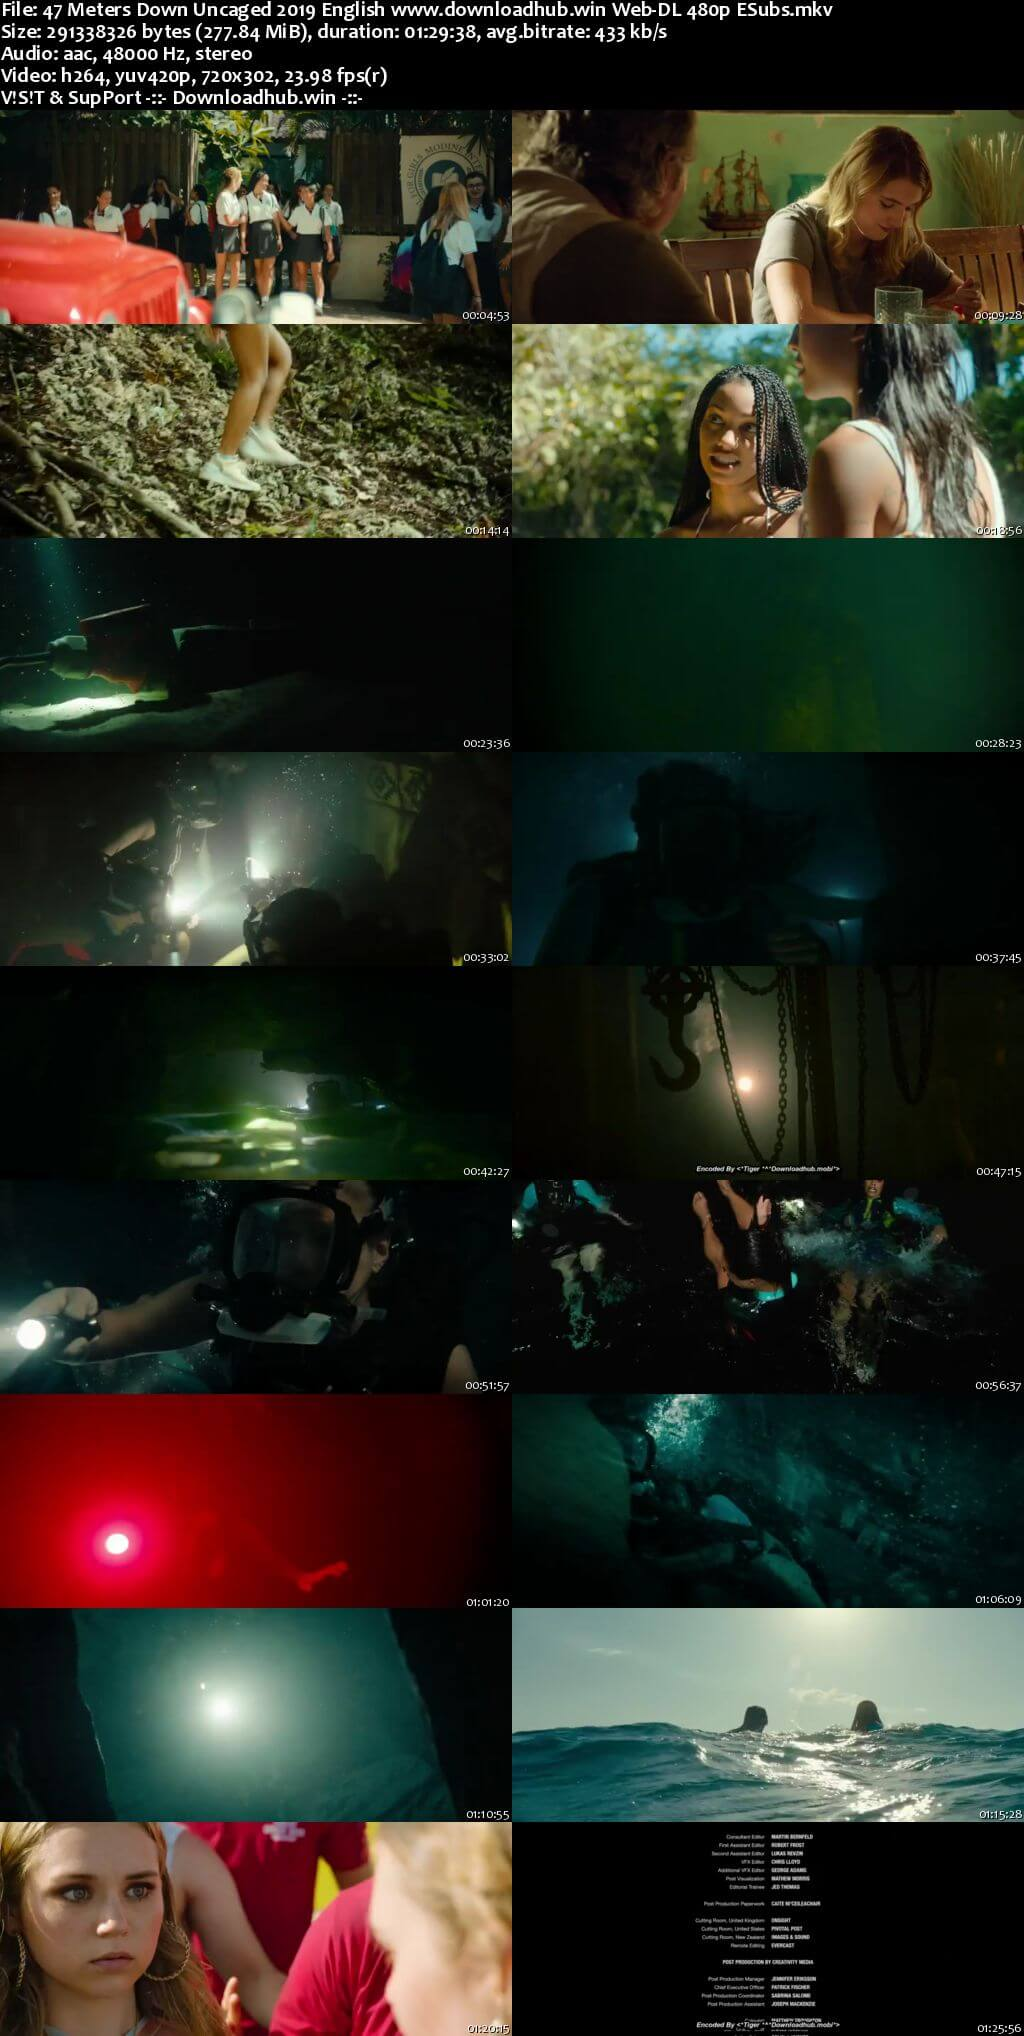 47 Meters Down Uncaged 2019 English 280MB Web-DL 480p ESubs